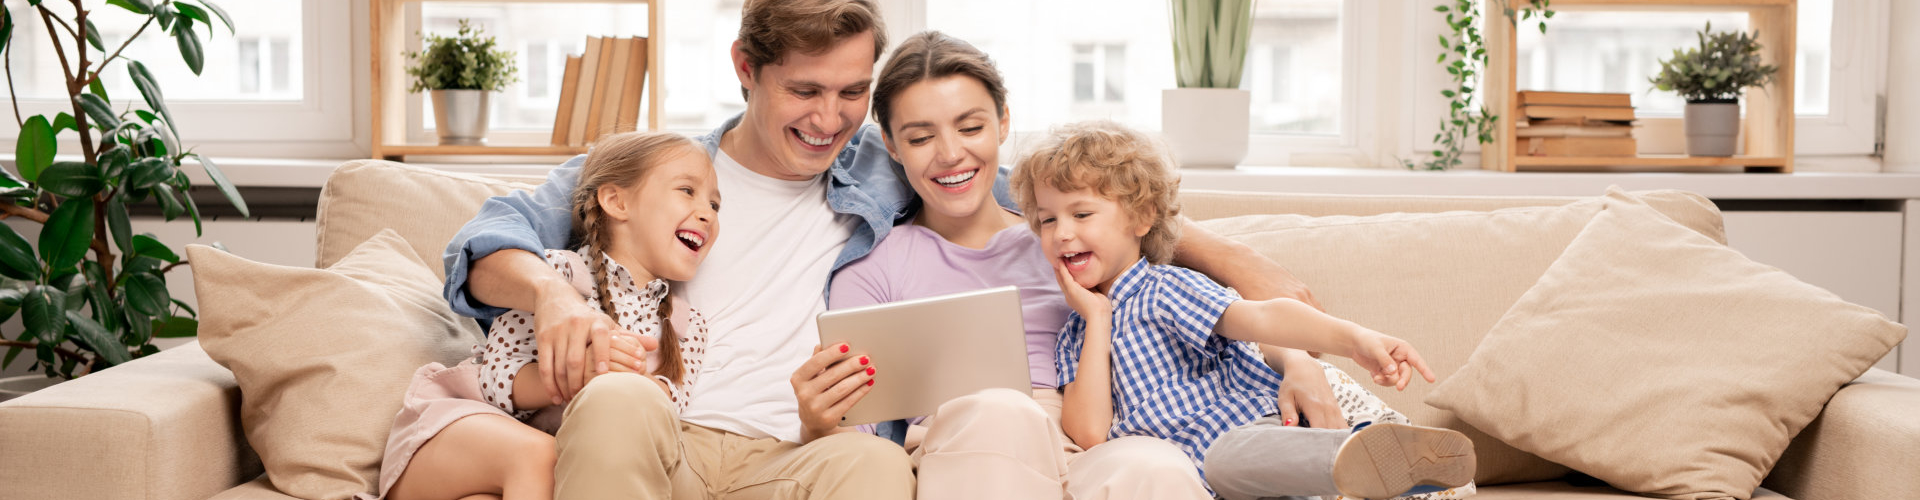 Young joyful casual family of two kids and couple sitting on sofa